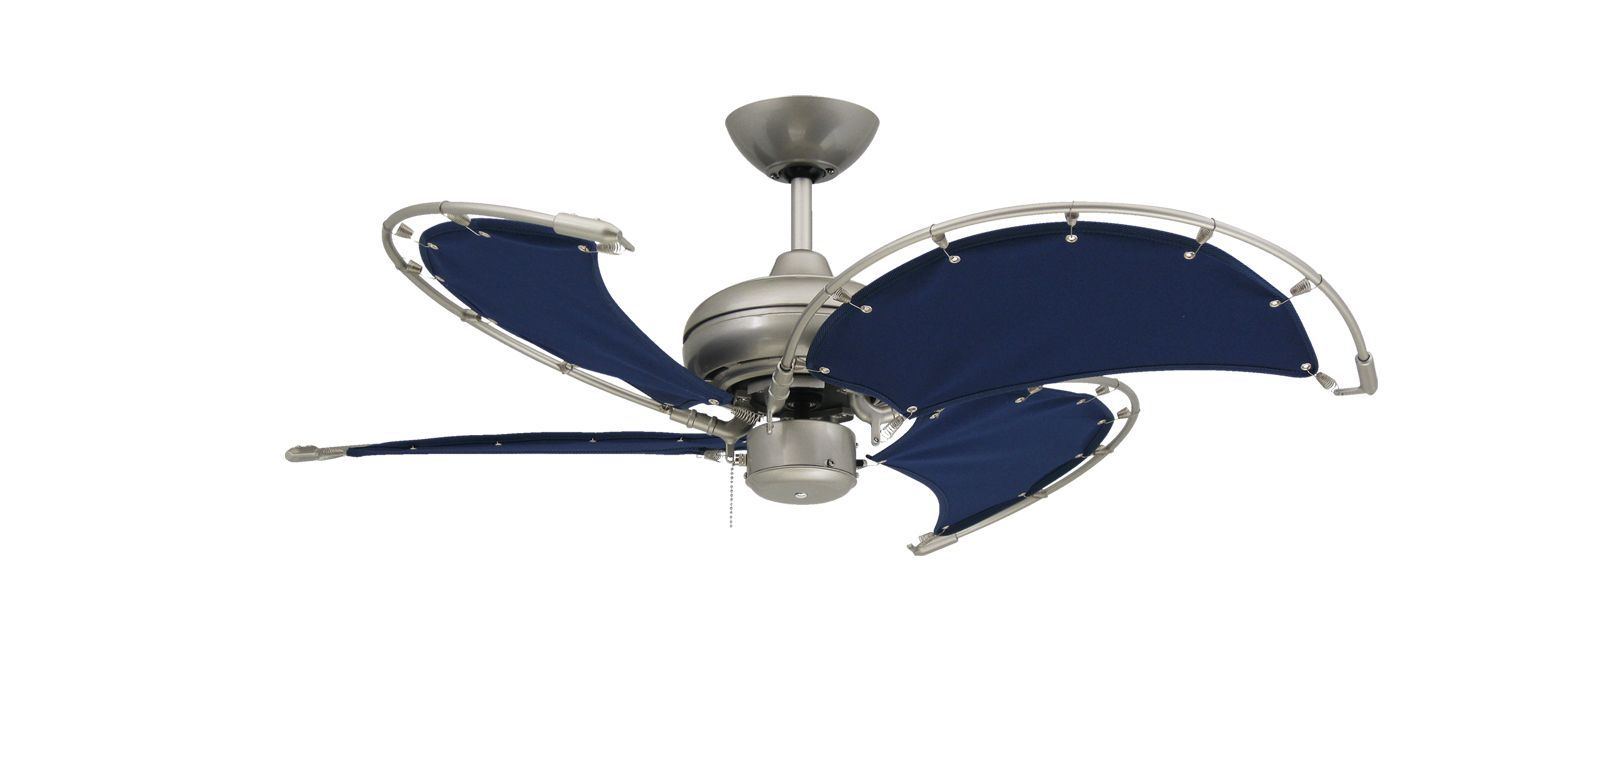 Visit The Home Depot To Buy TroposAir Voyage 40 In. Indoor/Outdoor Satin  Steel Ceiling Fan With Blue Fabric Blades 88702